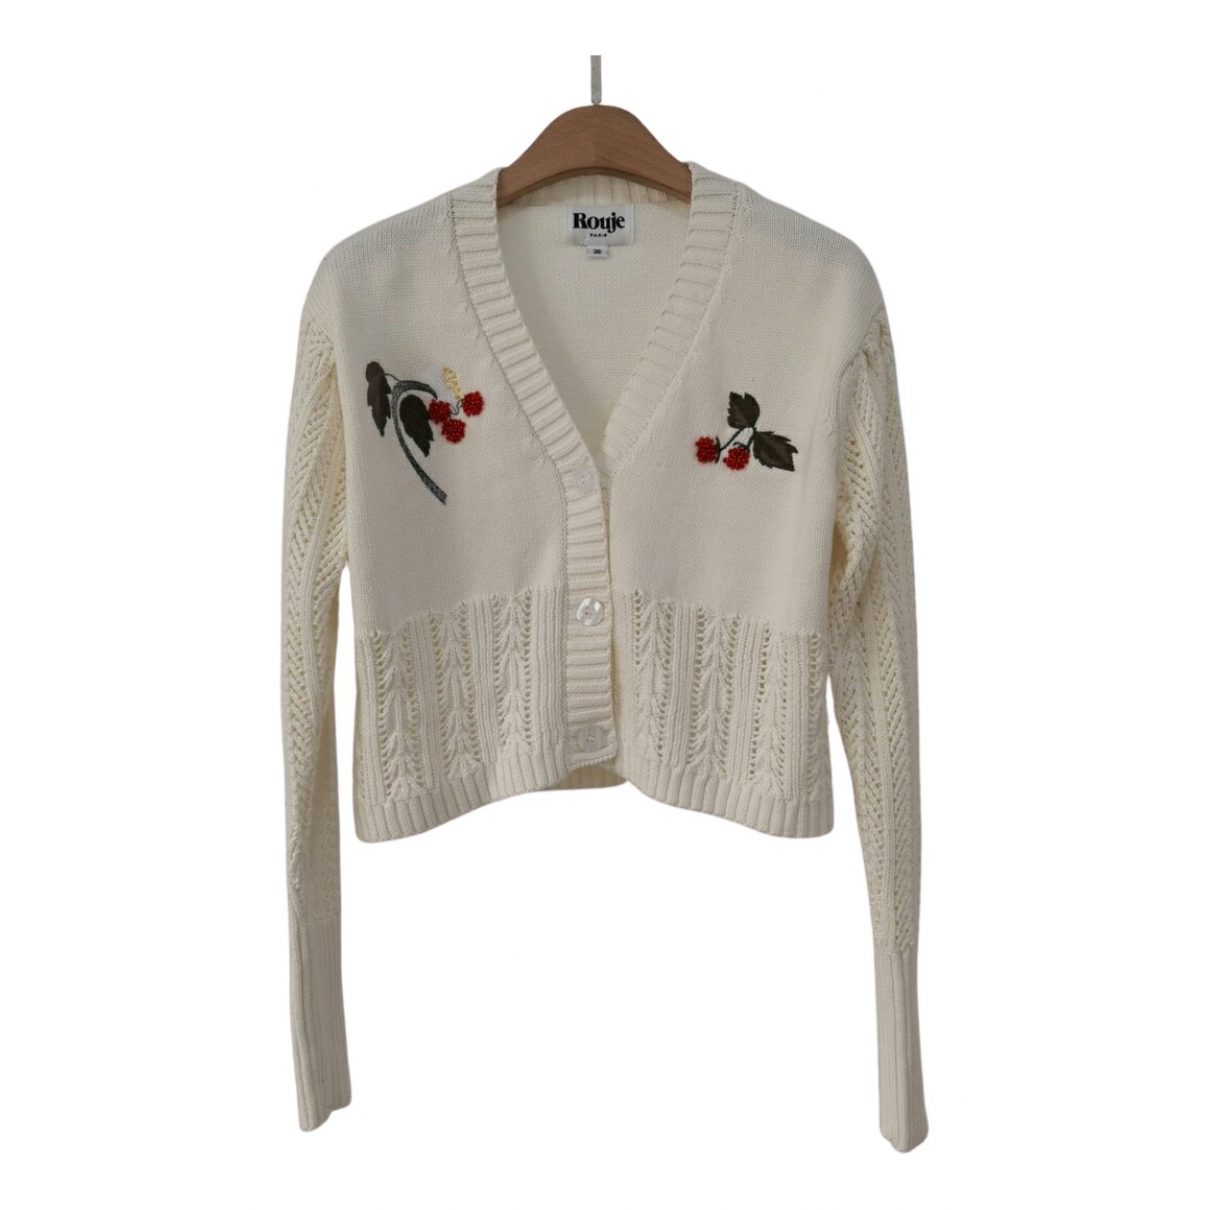 Rouje Spring Summer 2020 Pullover in  Ecru Wolle